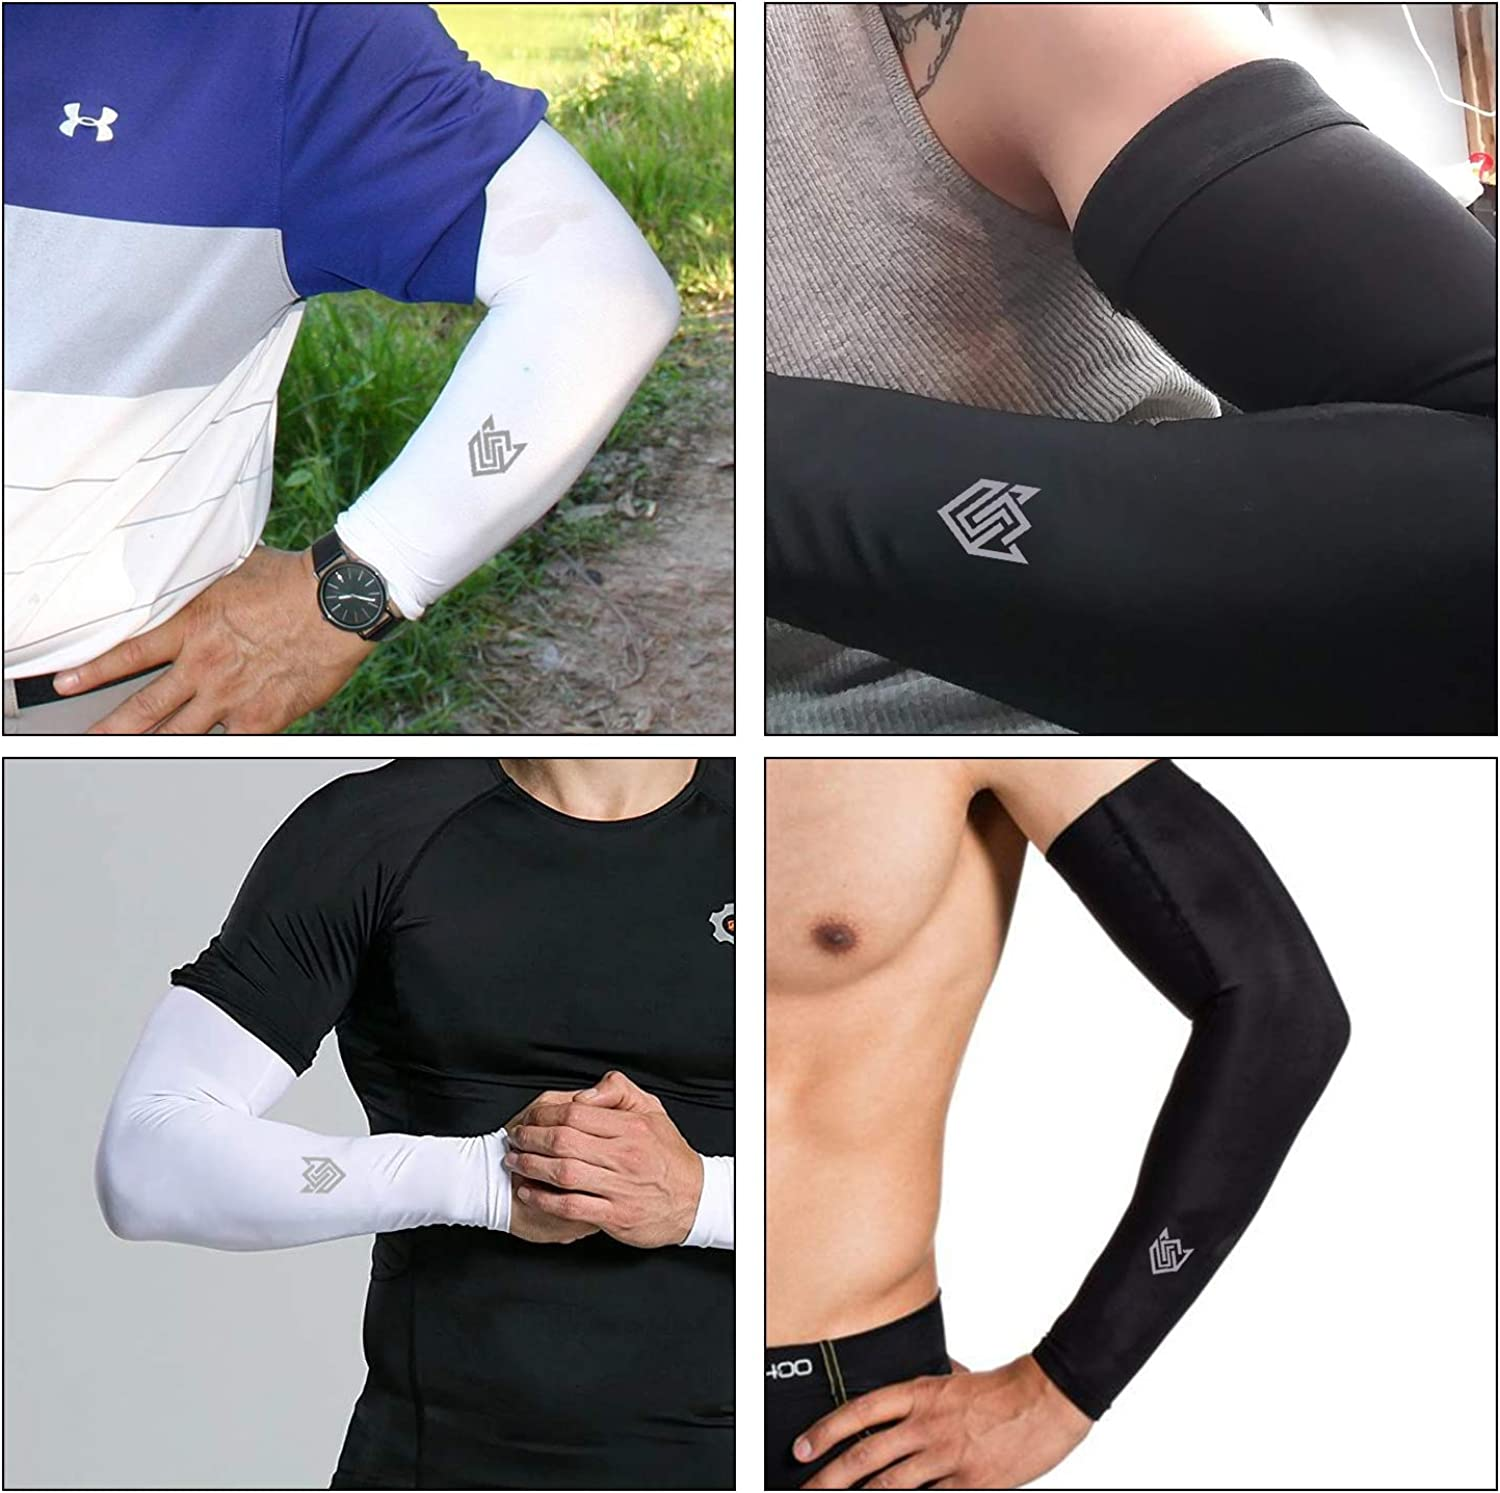 2 Pairs Cooling Arm Sleeves UPF 50 UV Sun Protection Compression Sports Sleeves for Men /& Women